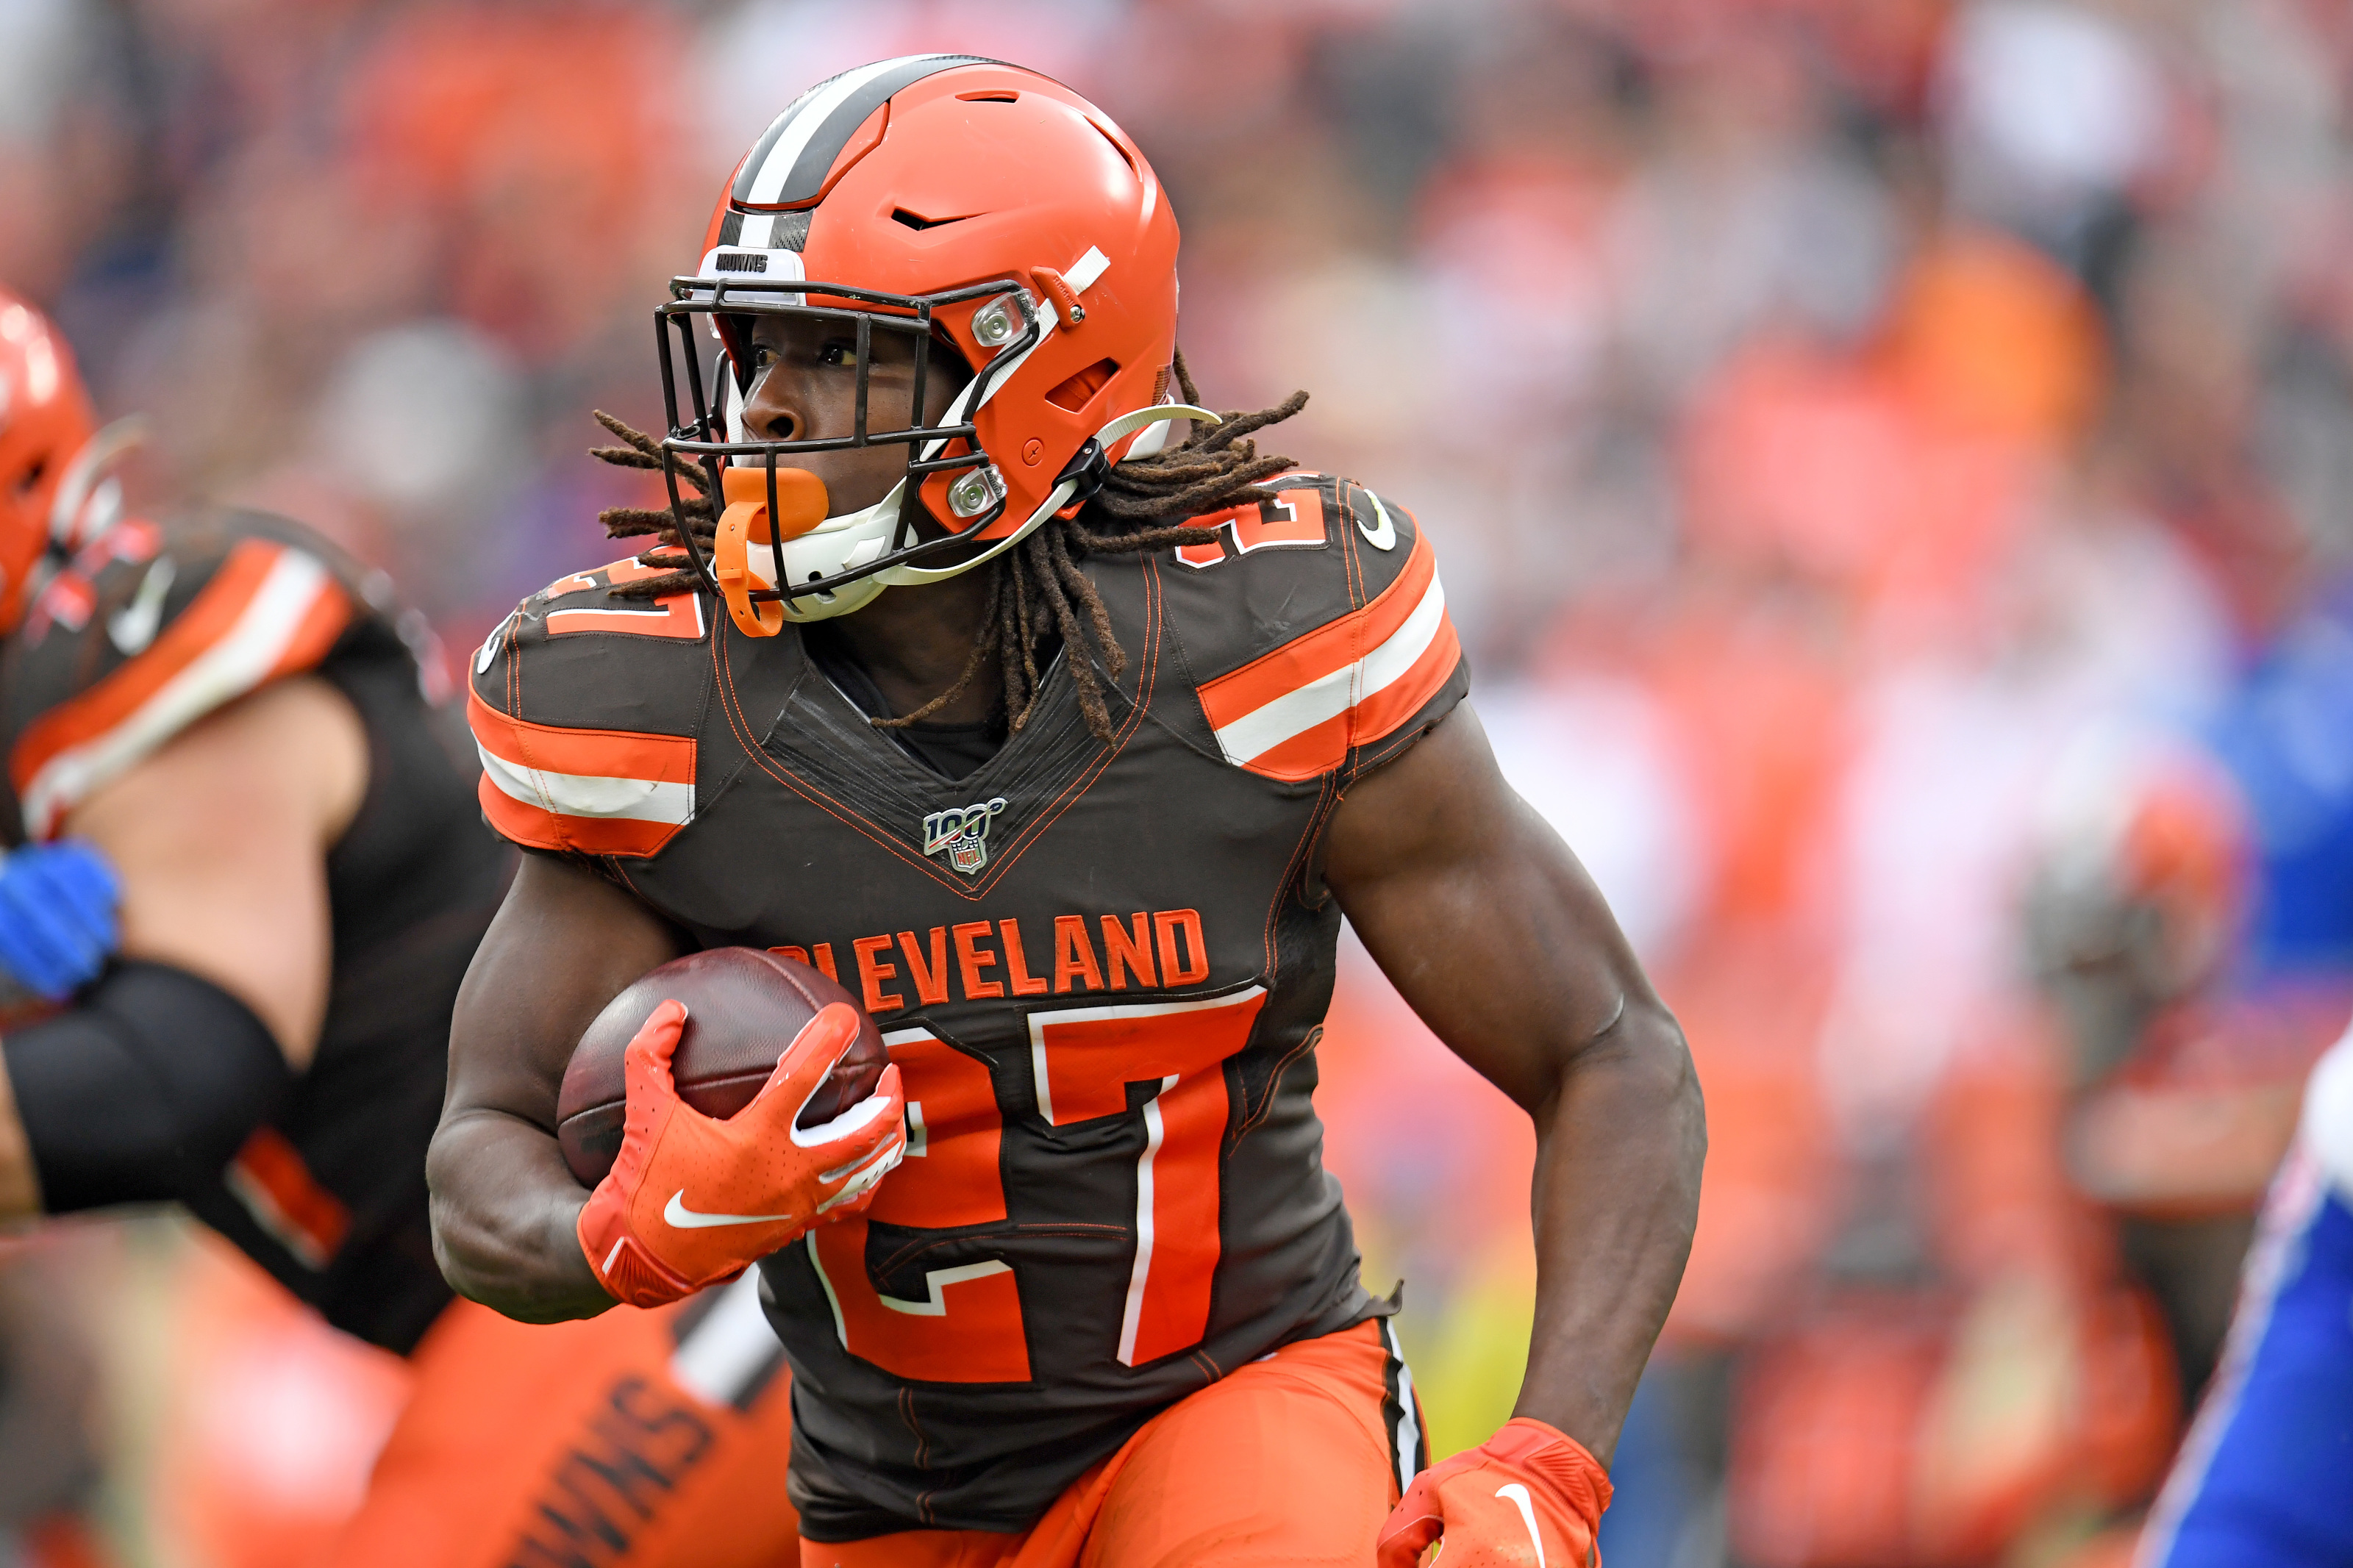 Browns vs. Steelers Final Score: Cleveland wins 21-7 on